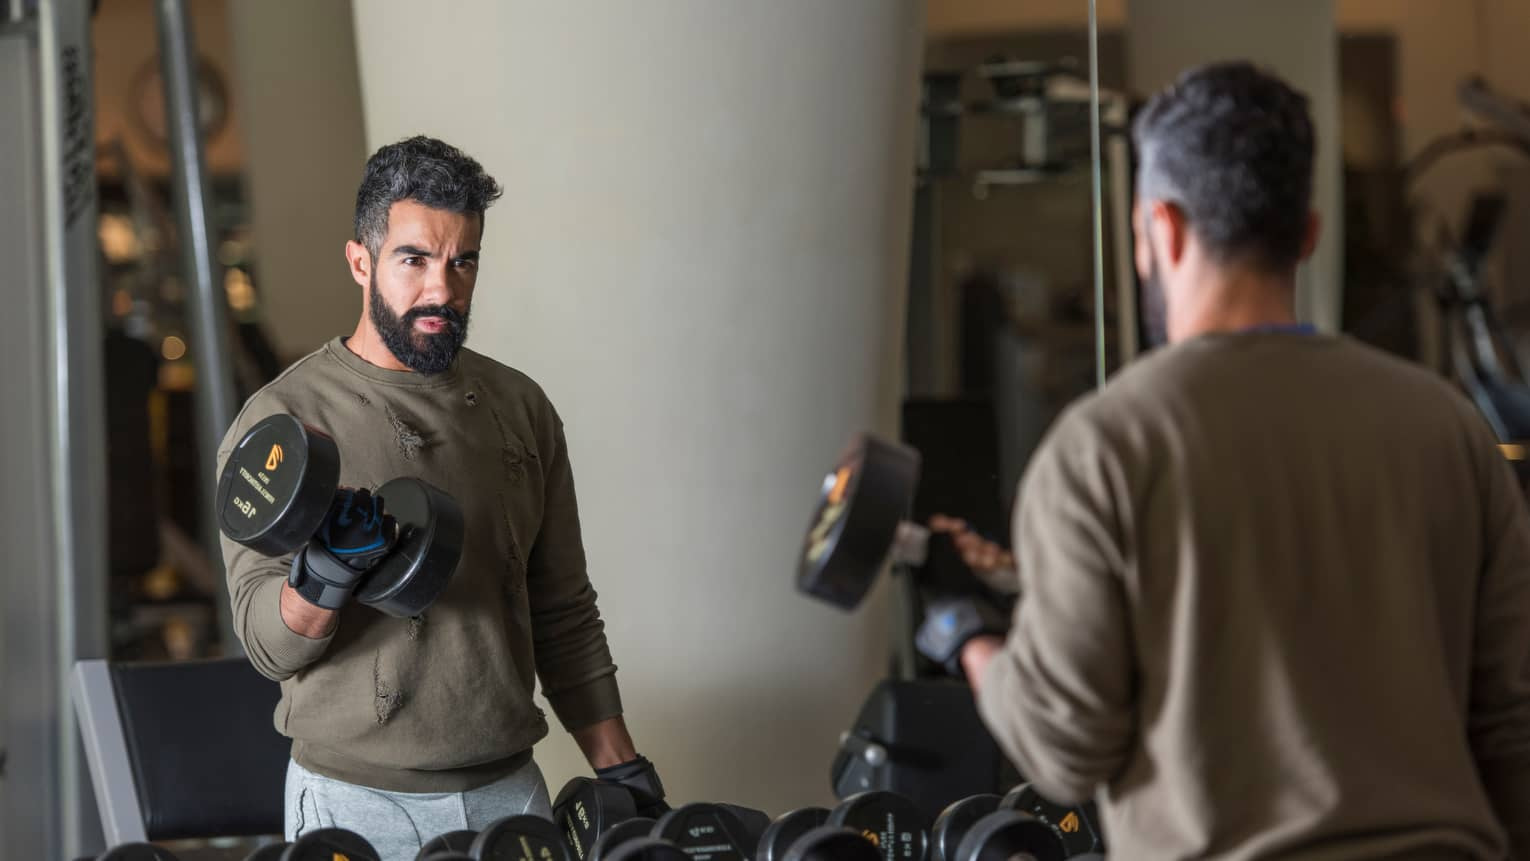 Man with beard wearing casual sweatshirt and sweatpants stands looks in gym mirror, lifts large hand weights